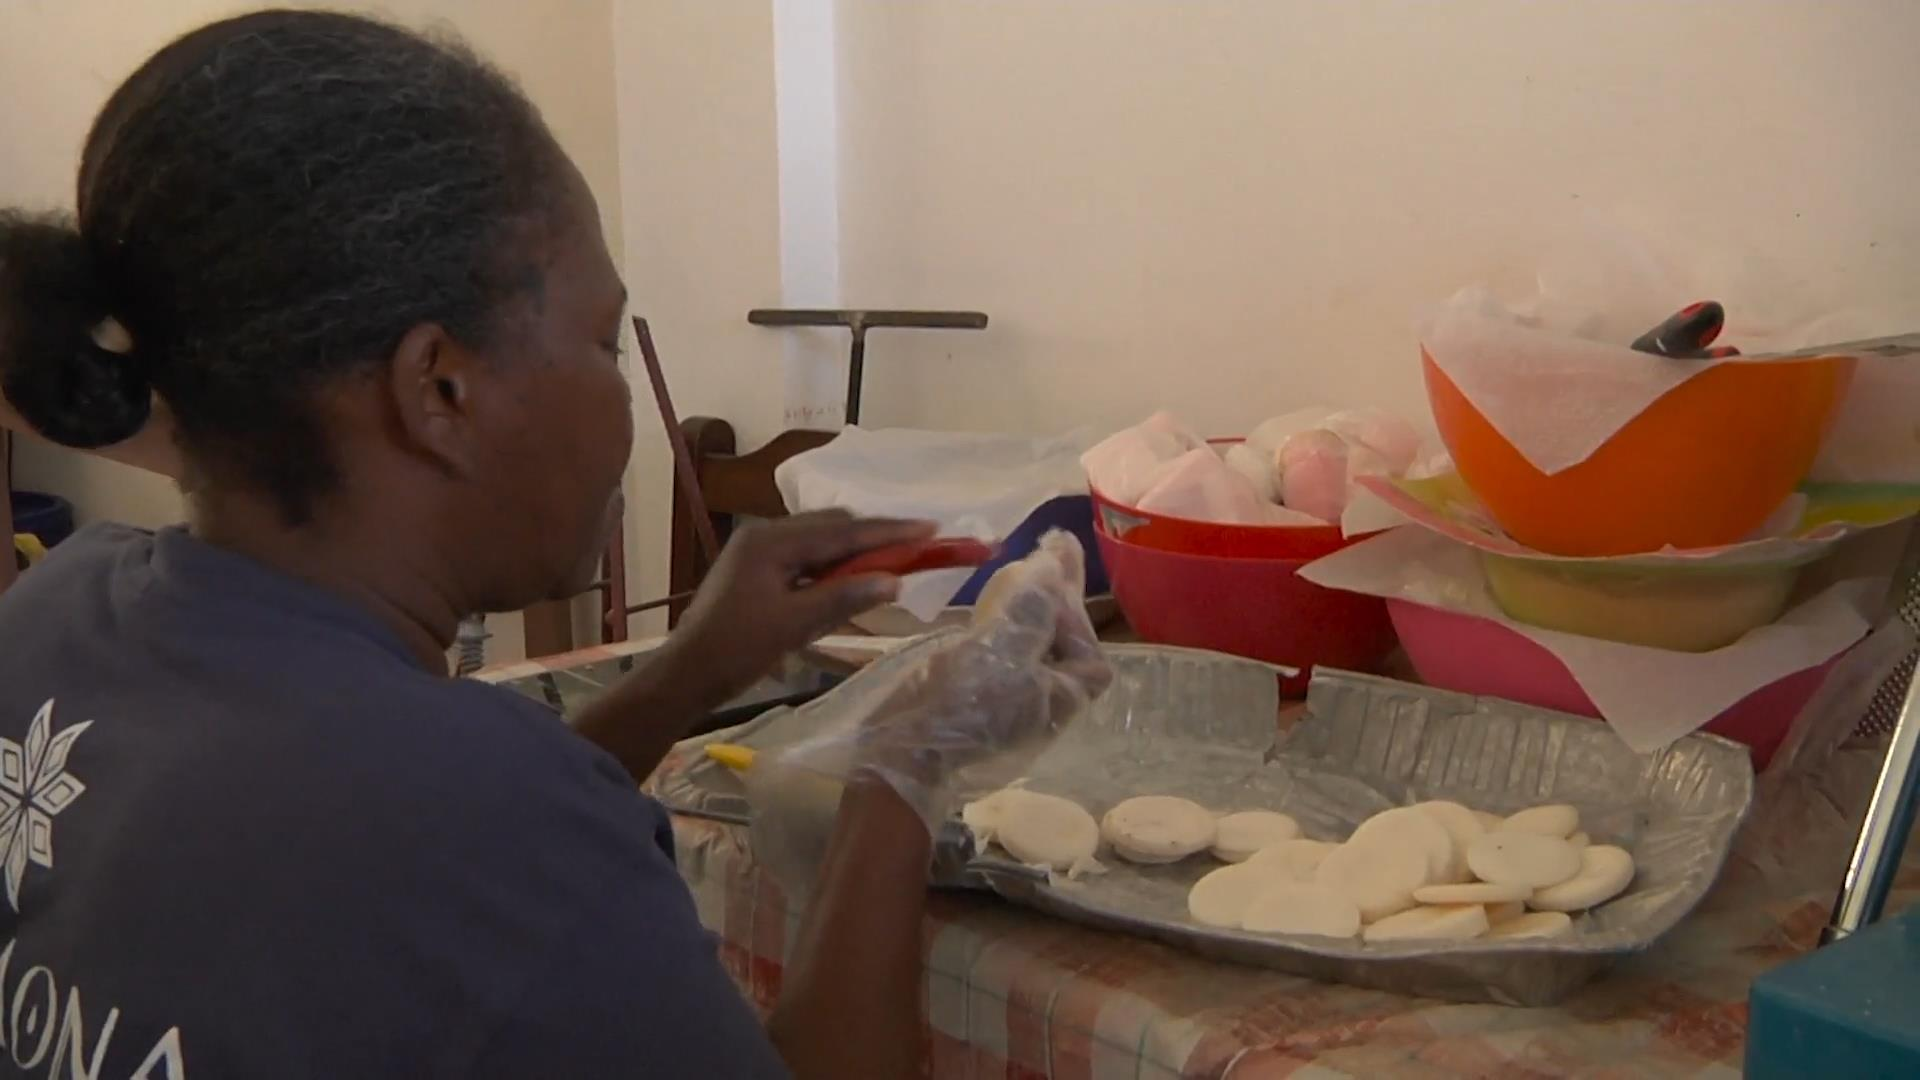 soap recycling is fighting cholera in haiti and empowering women